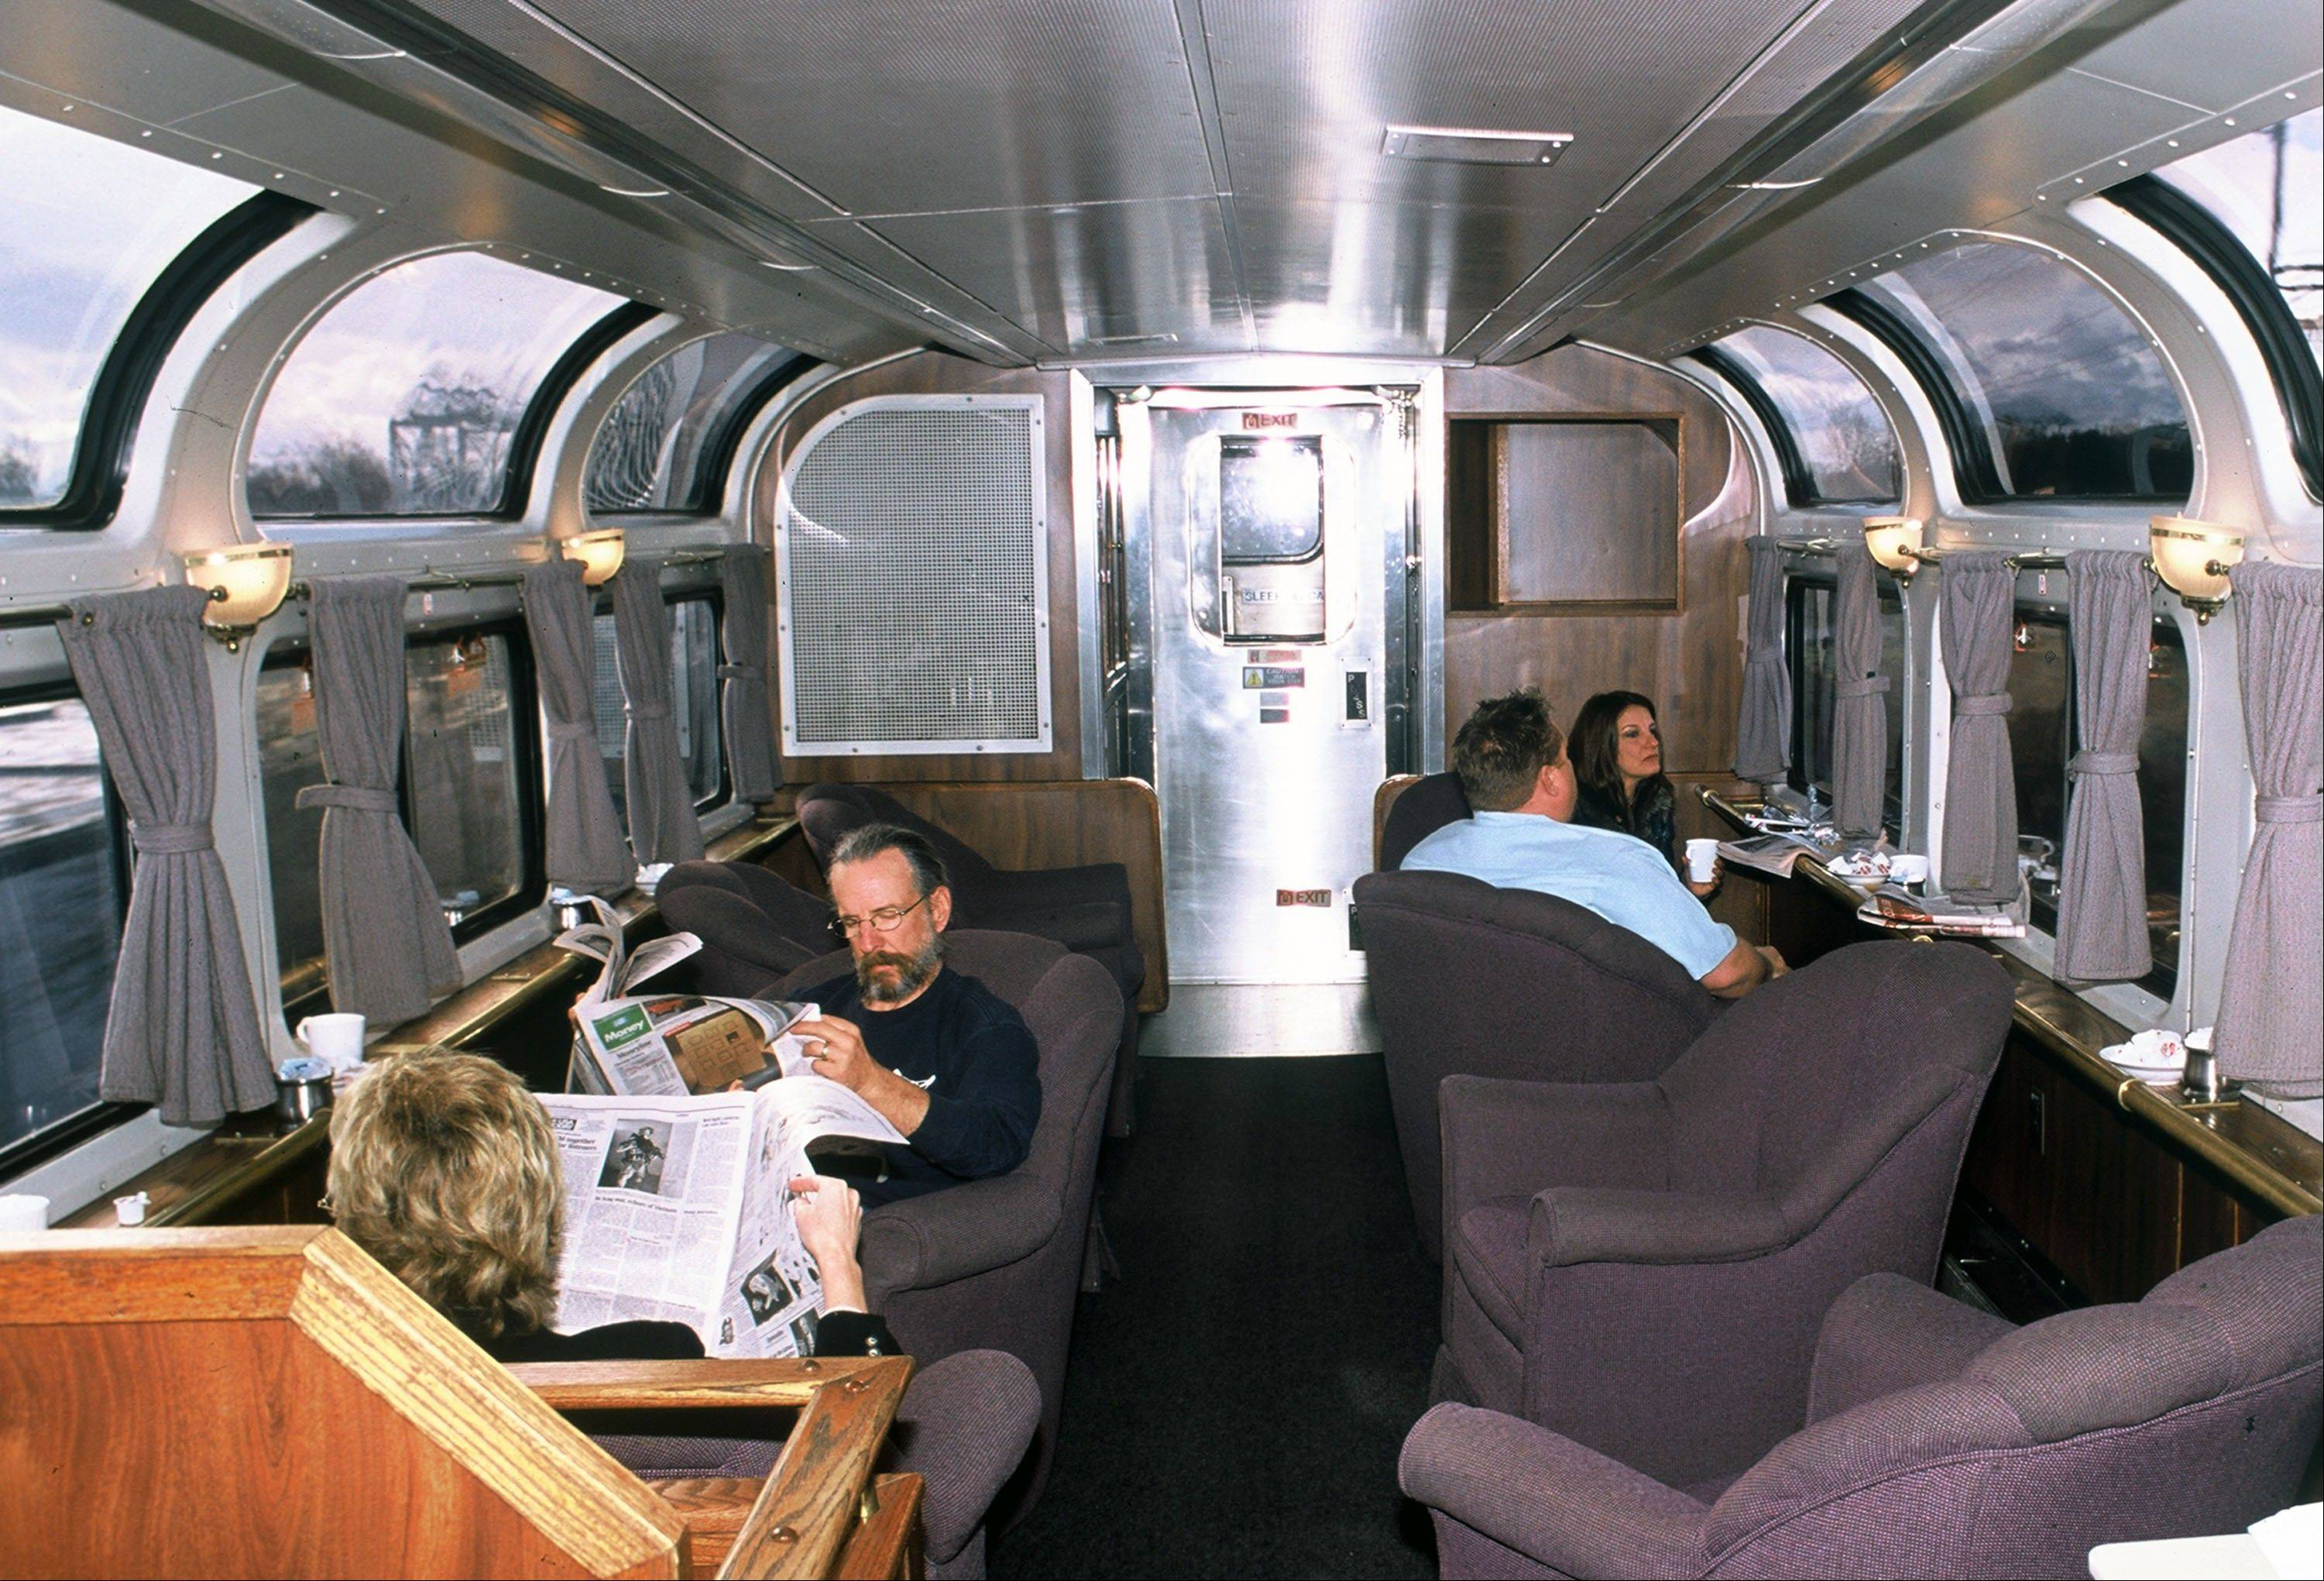 Passengers relax in a lounge car aboard the California Zephyr, which runs between Emeryville, Calif., and Reno, Nev. The train crosses the Sierra Nevada mountain range and follows the same course as the historic Transcontinental Railroad.